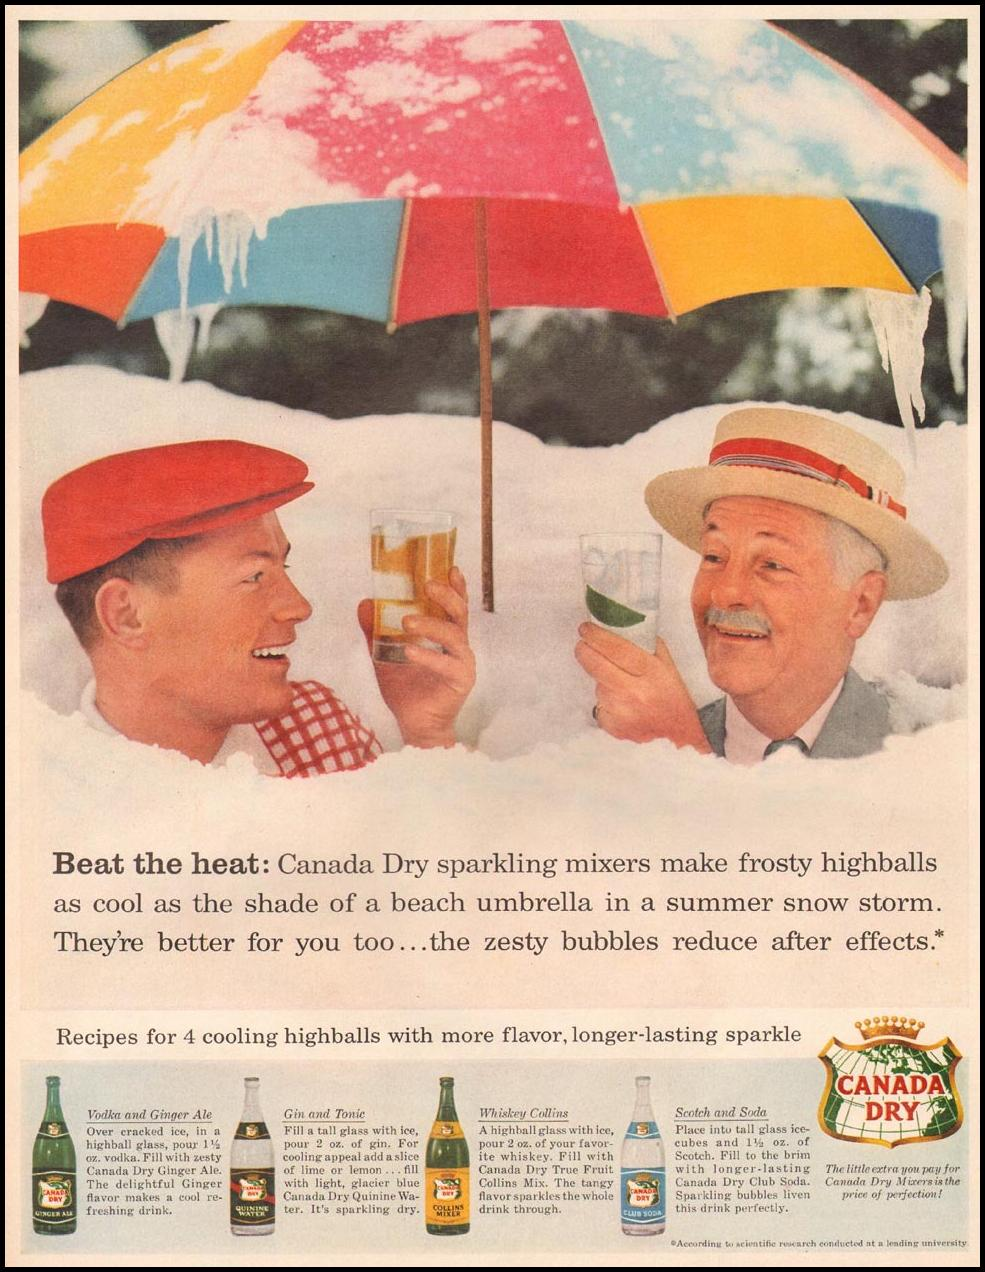 CANADA DRY SPARKLING MIXERS LIFE 06/24/1957 p. 13